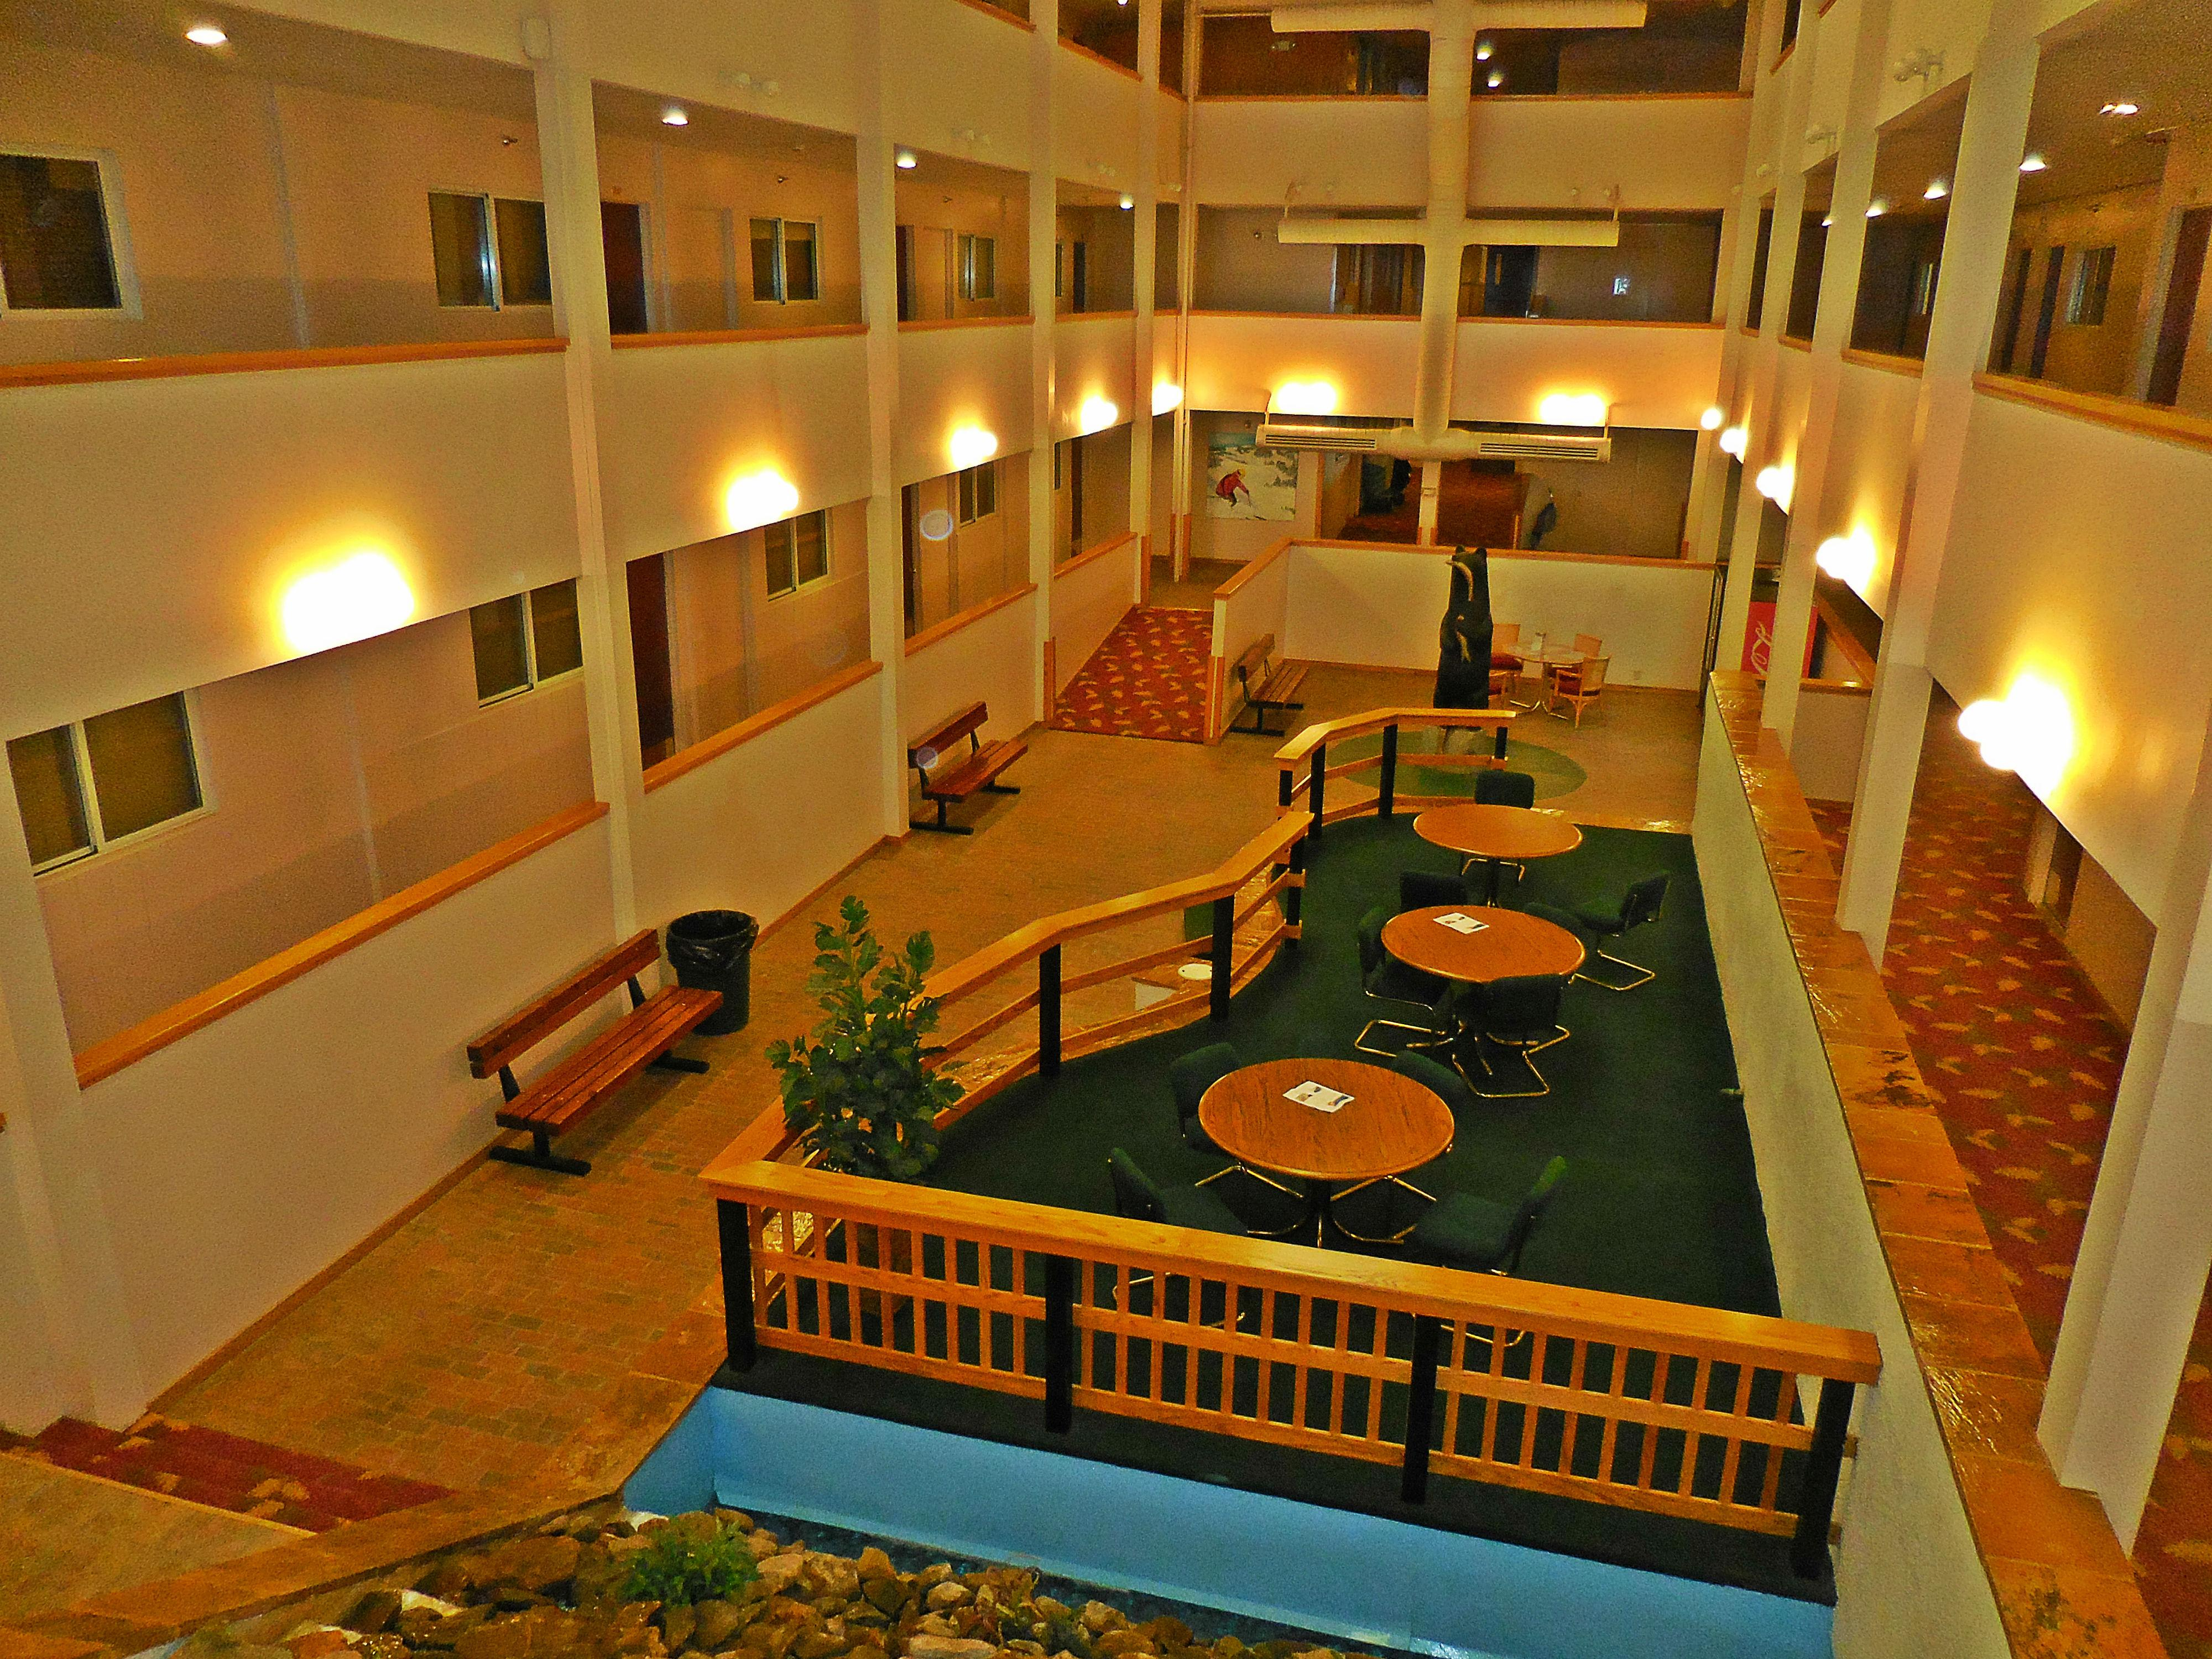 Mountain Lodge offers large common areas, an arcade, TV viewing area, fitness area, and playground equipment!